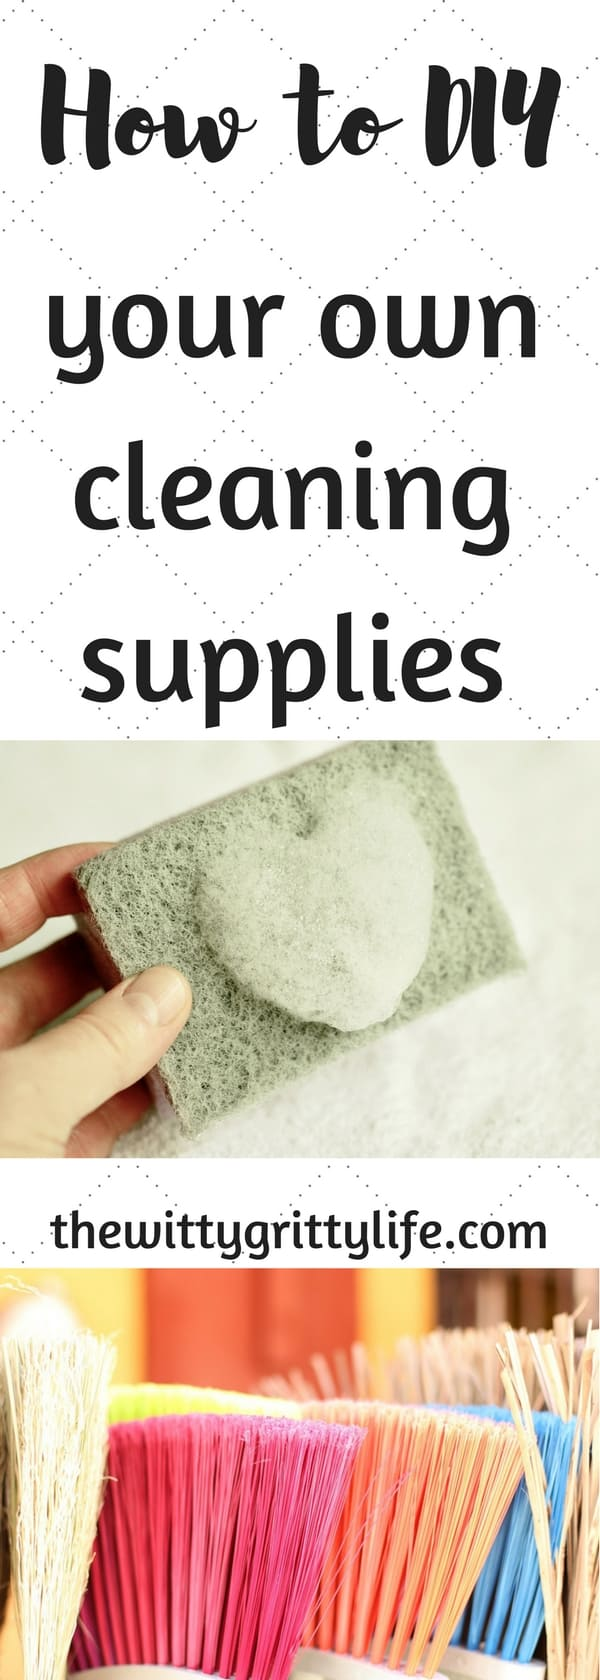 Have you ever thought of making your own cleaning supplies? Do you want to know what is in the cleaner or airfreshener you use? There are many easy and safe alternatives. And the best part? They will save not only the environment, but money and time as well!